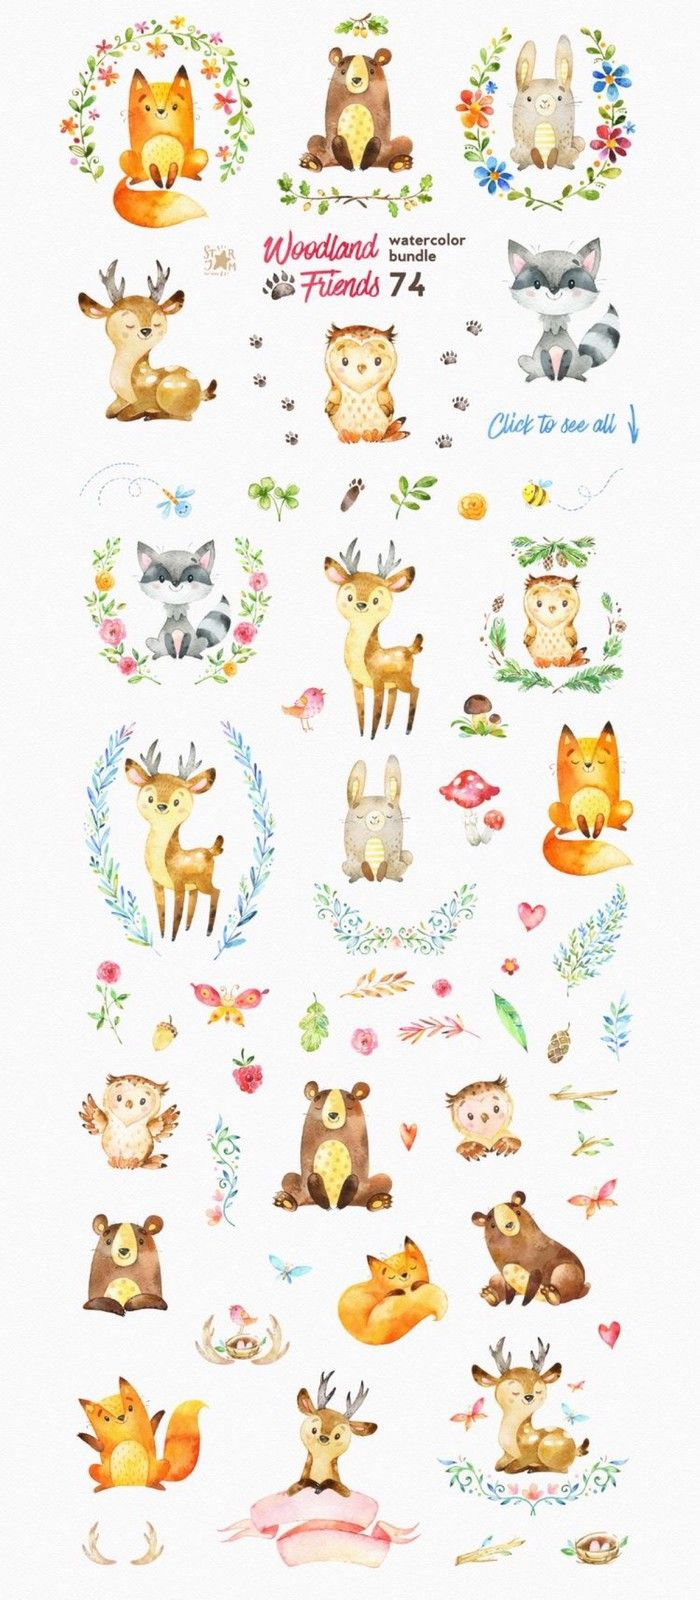 Bottle brush woodland animals - The Perfect Woodland Animal Friends For Diy Invitations Kids Projects Art And More